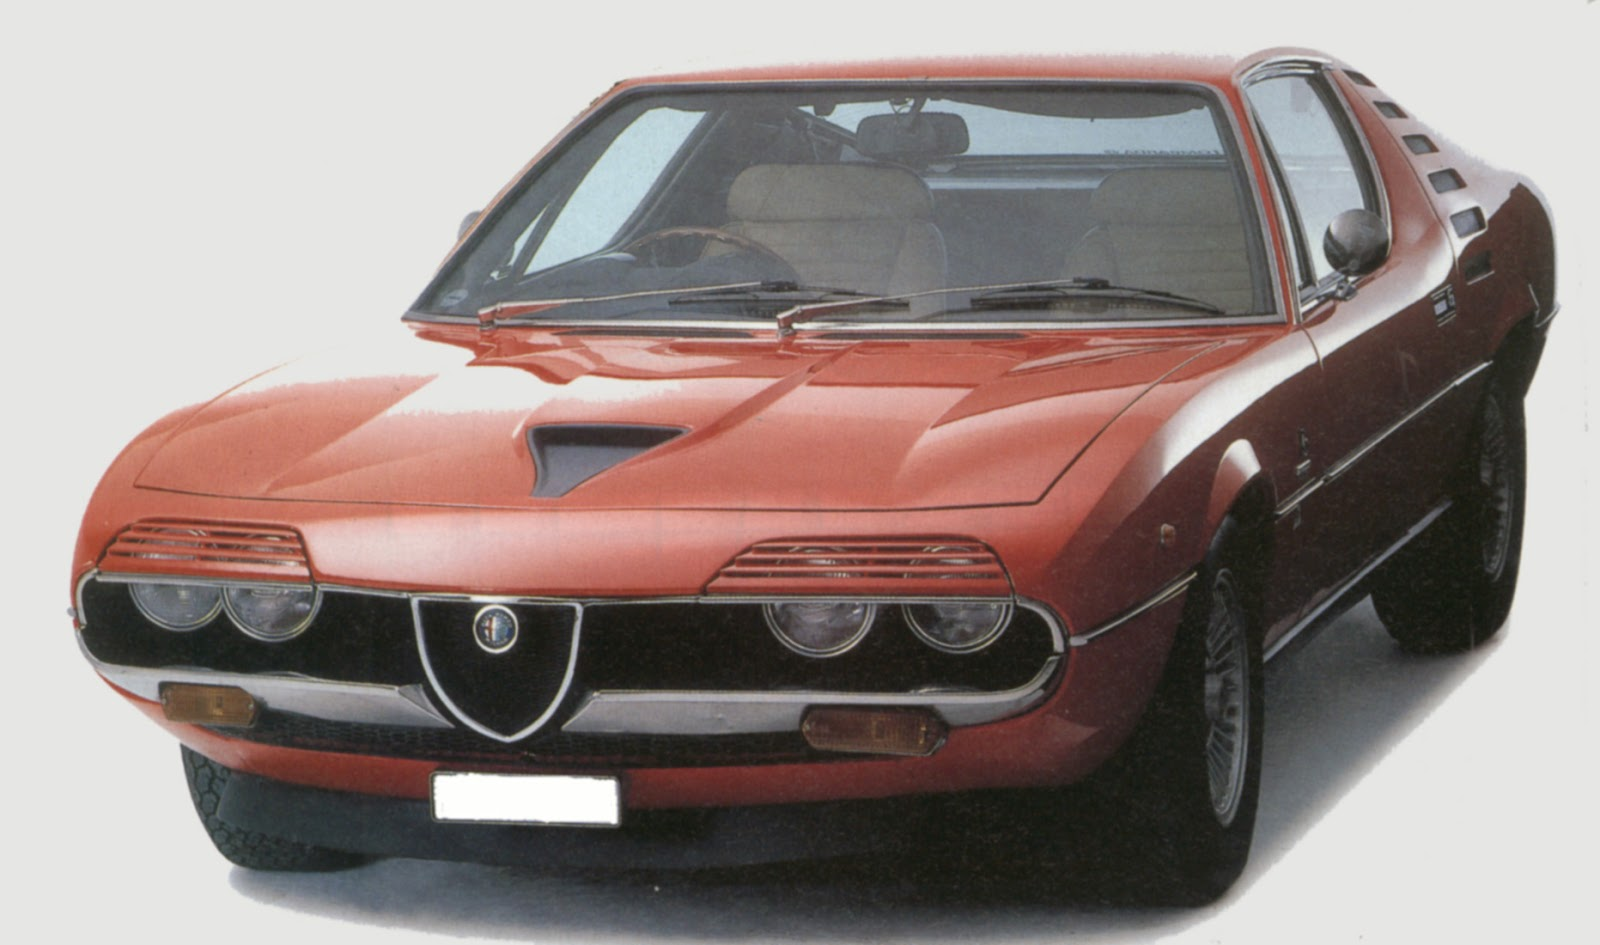 Produced from 1971 to 1977 in limited numbers, the Montreal had a detuned  Lemans engine paired to a Giulia GTV suspension. A strange mix of exotic  and ...